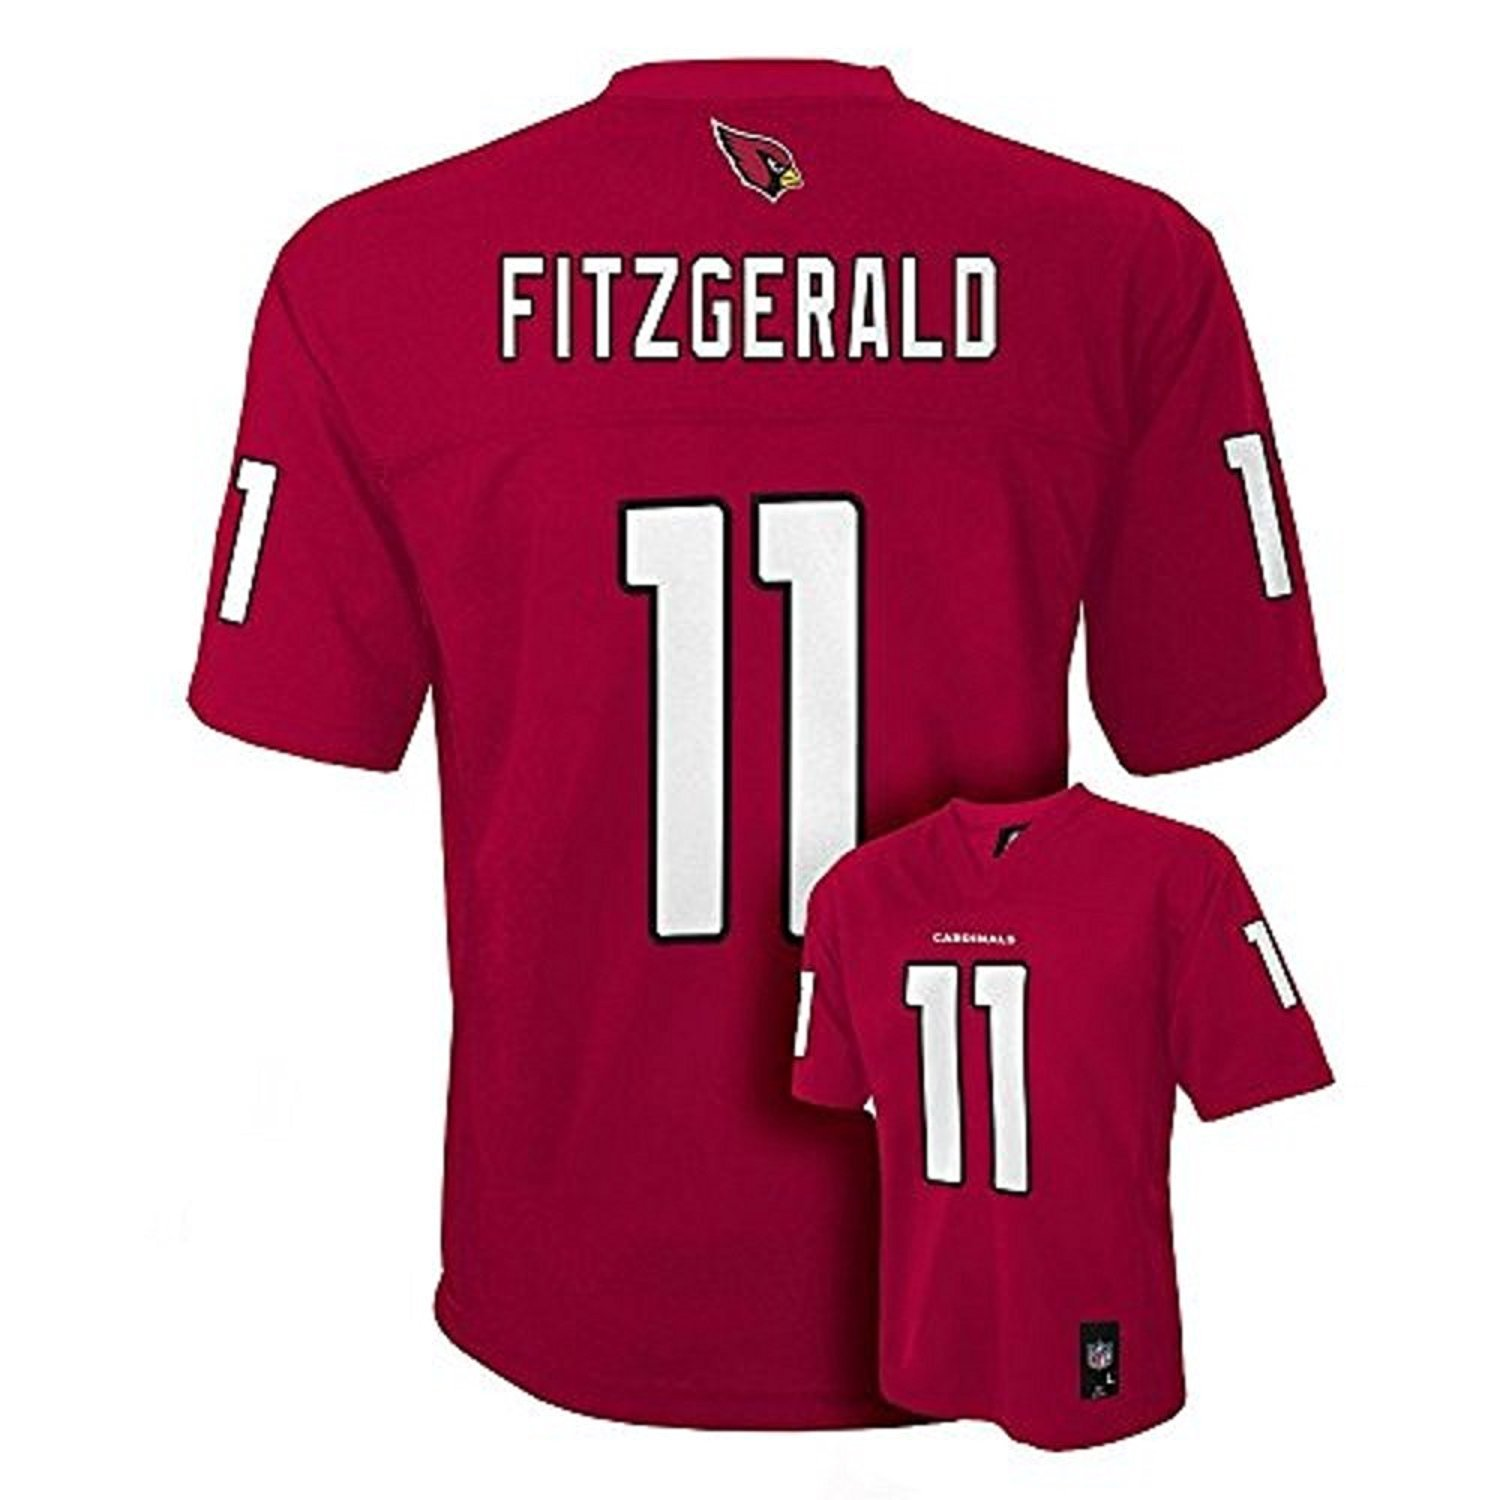 Buy Larry Fitzgerald Arizona Cardinals Helmet jersey T-shirt Shir in ... 9f1f0d2dc